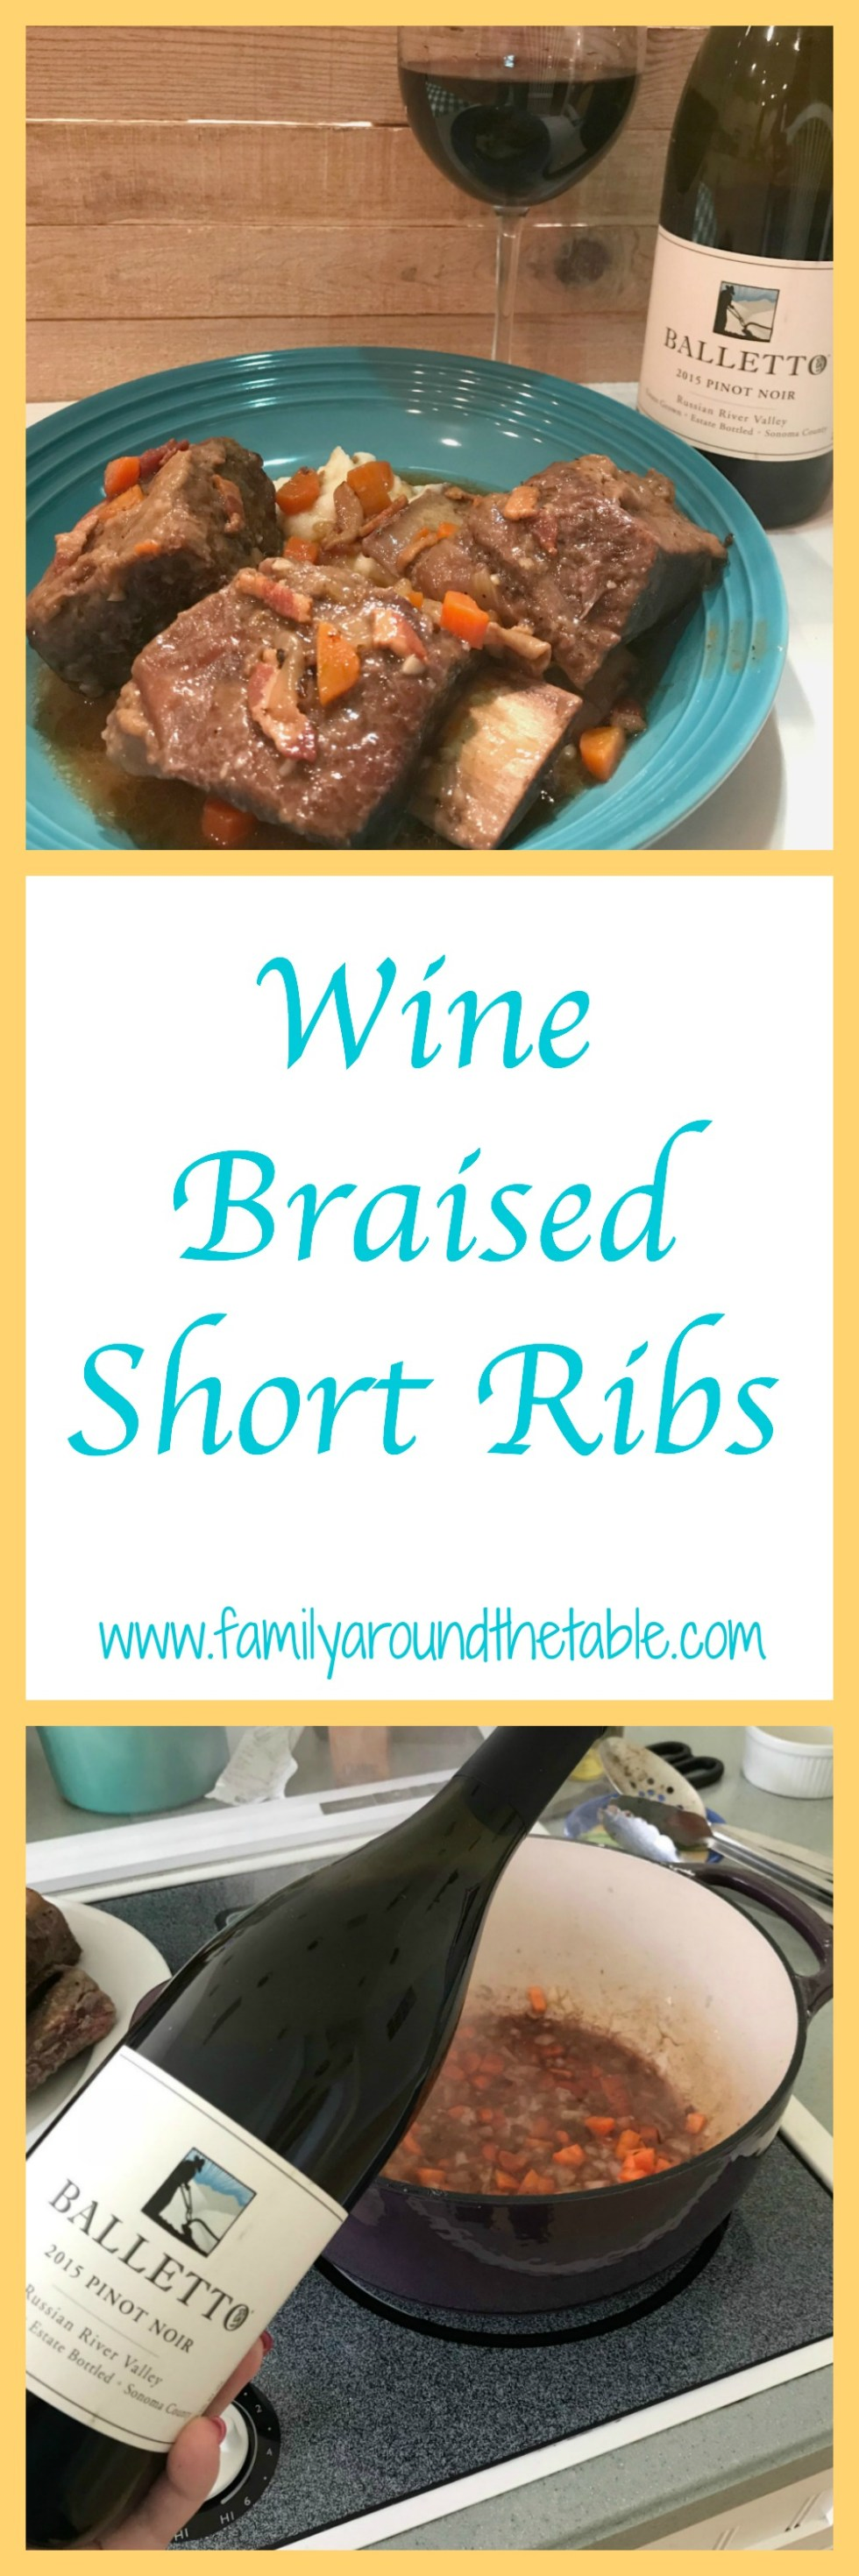 Wine braised short ribs are mouth watering good.